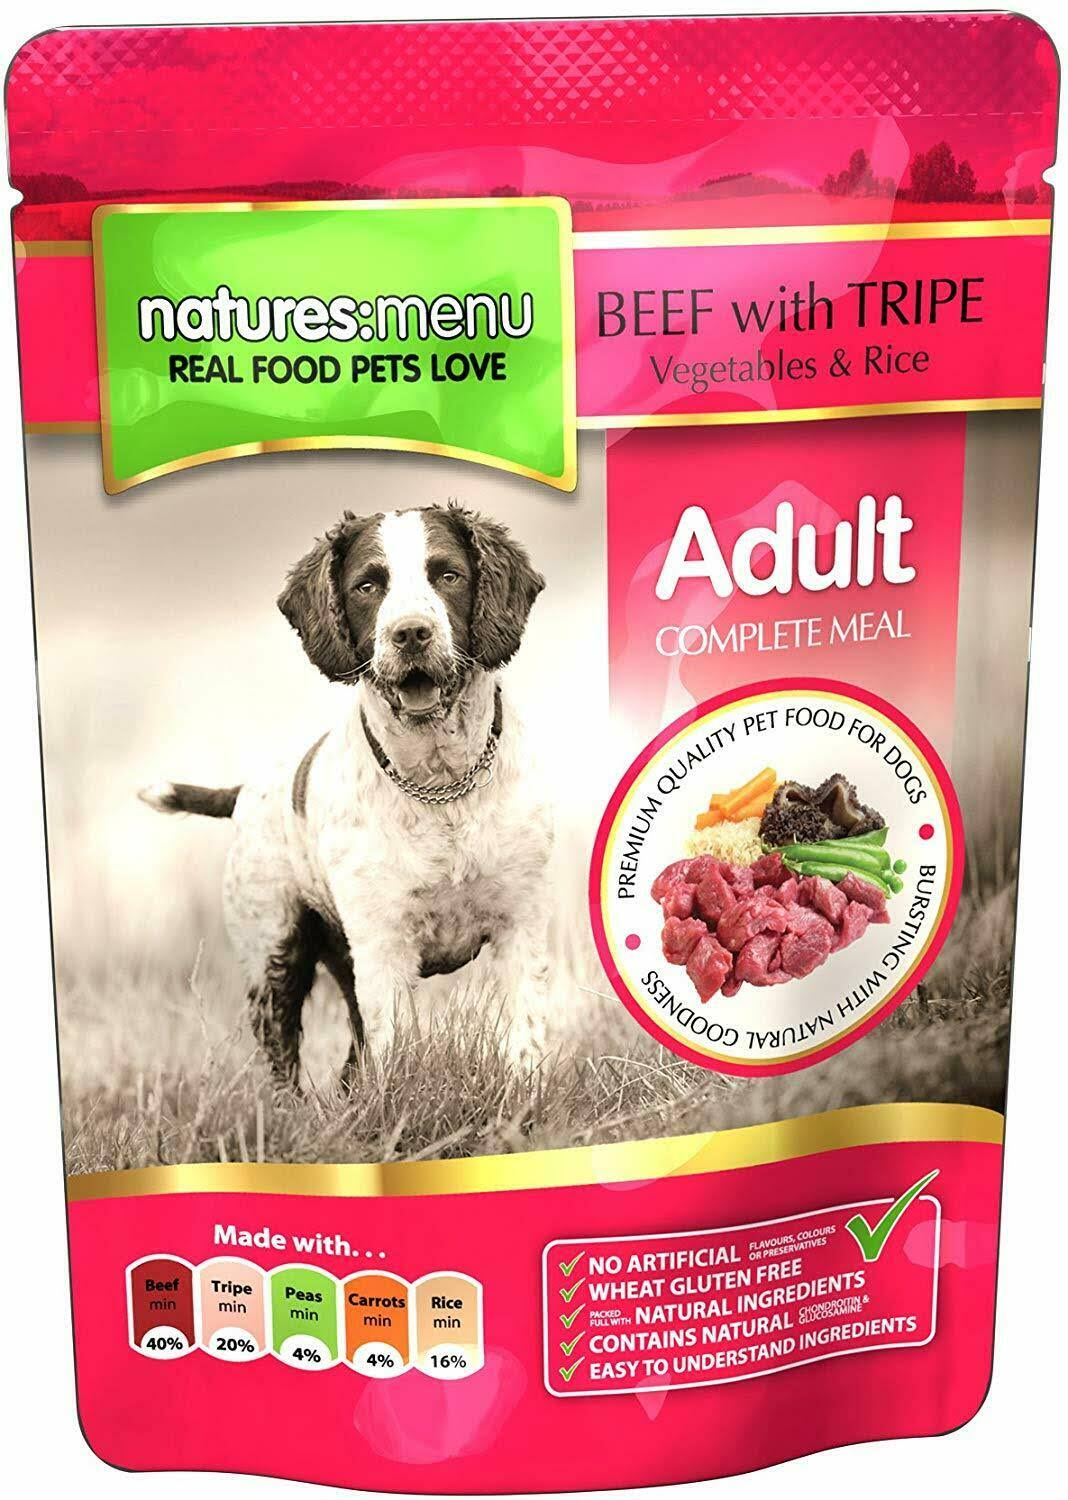 Natures Menu Dog Food - Beef and Tripe, Adult